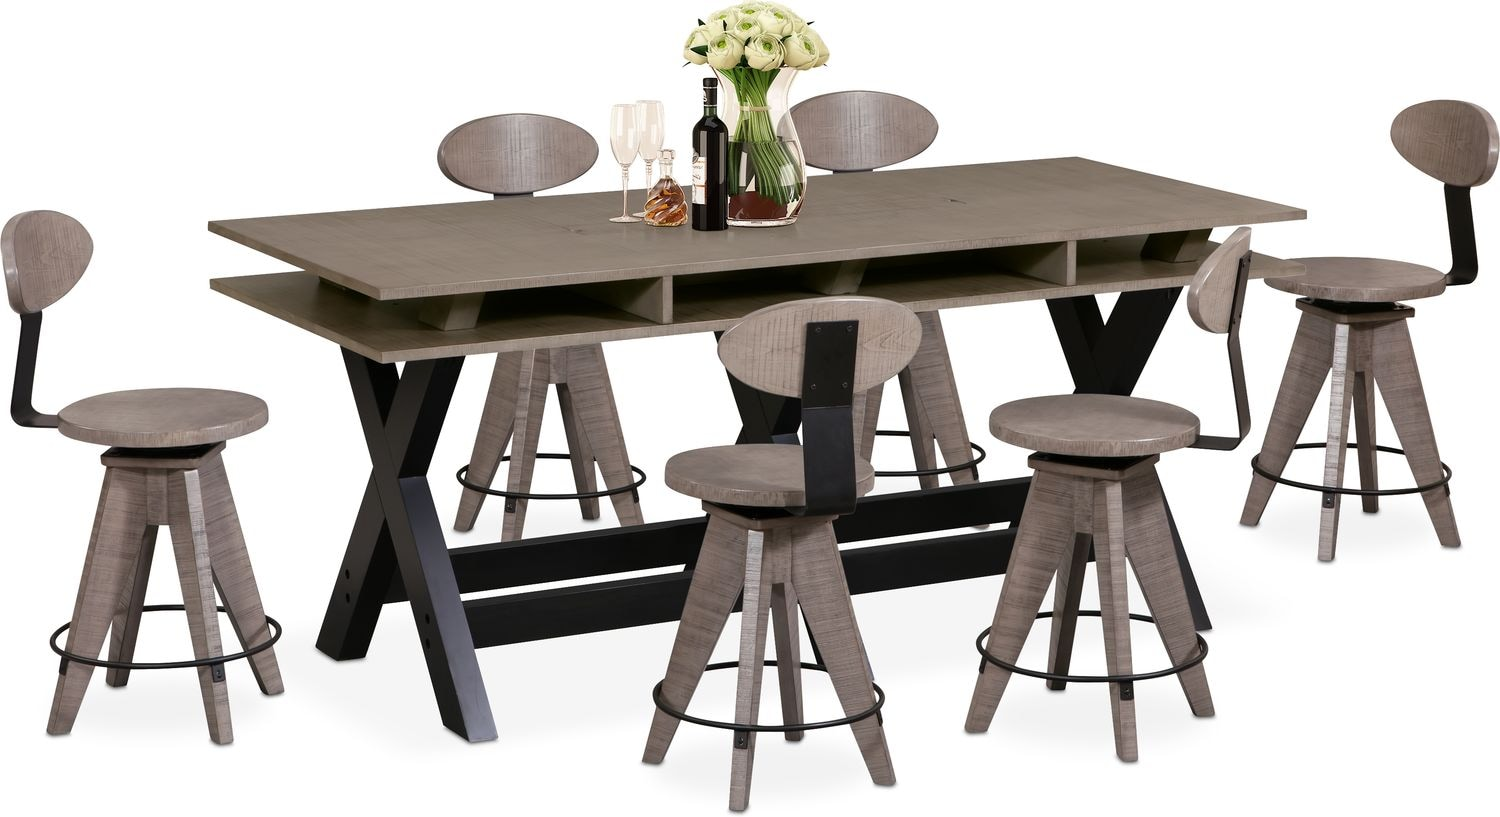 tech counter height dining station and 6 drafting stools gray